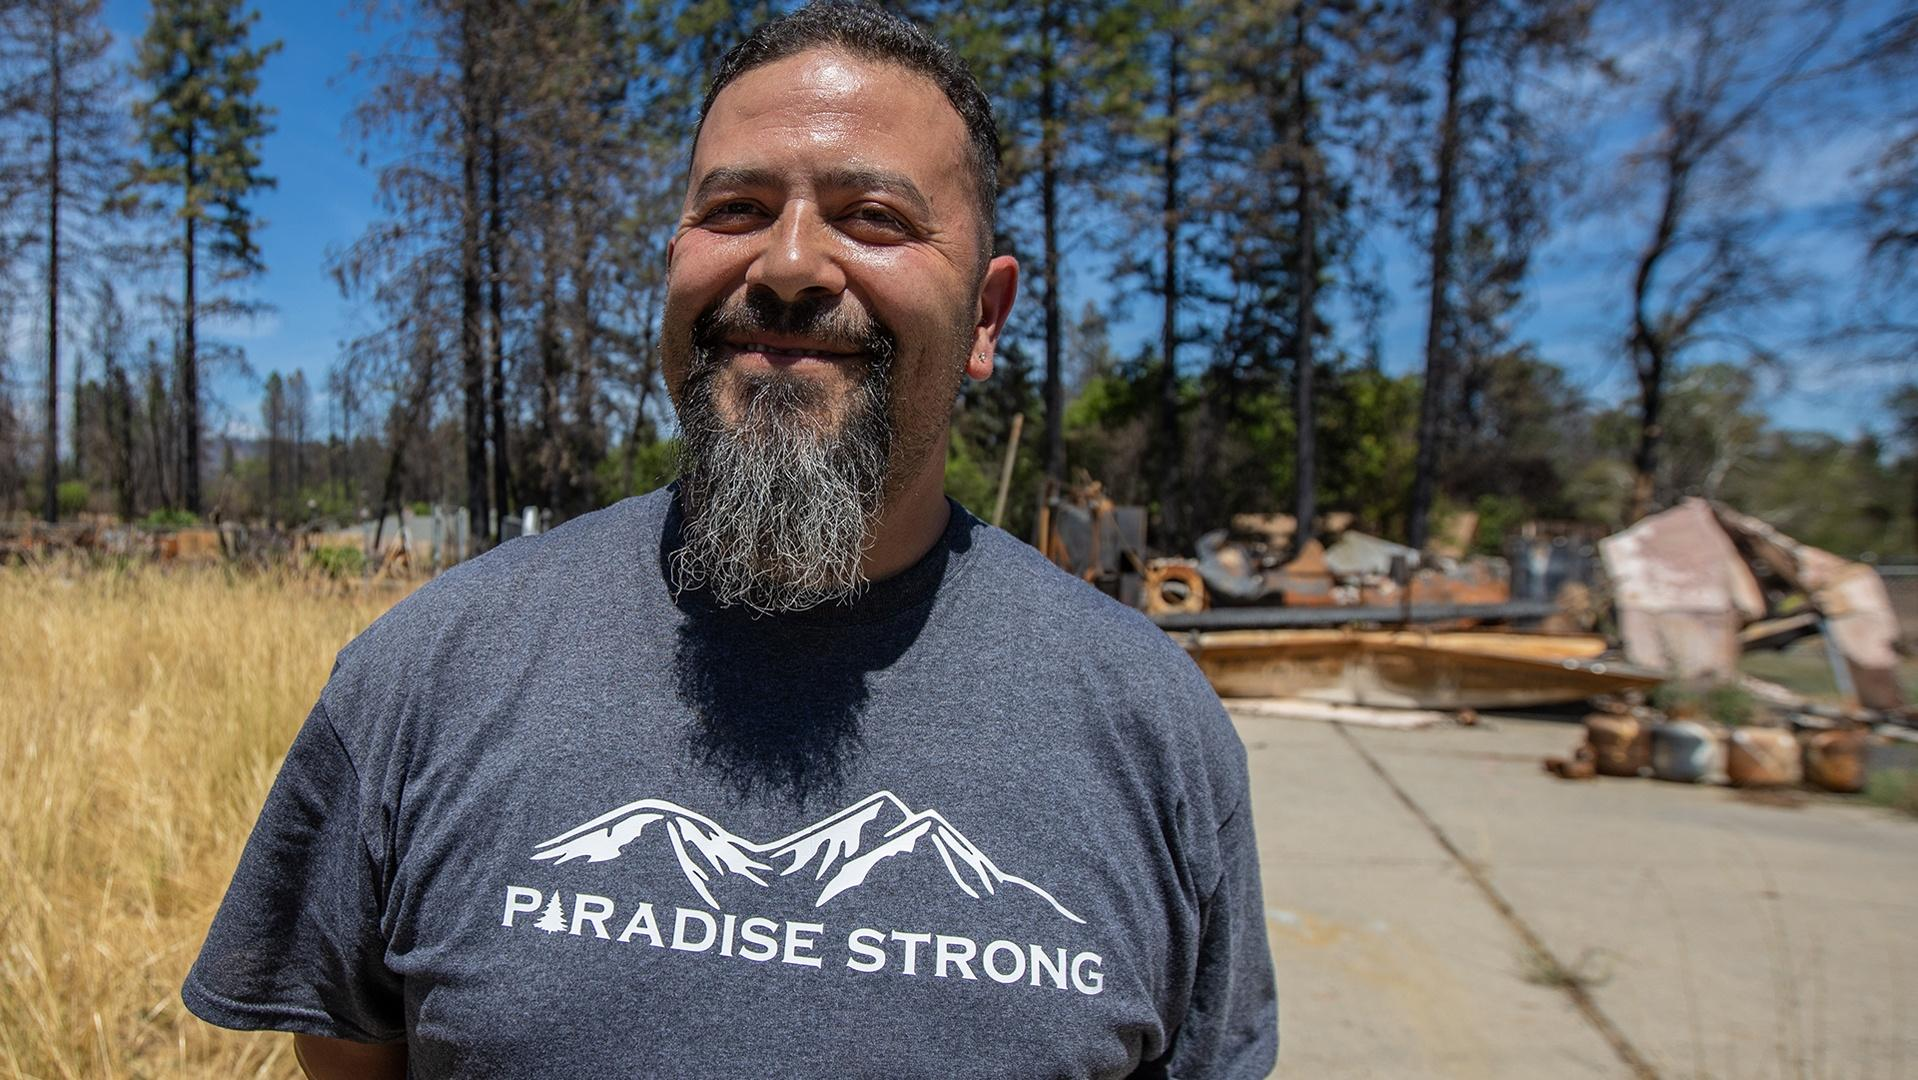 Paradise Strong | Paradise Rebuilds